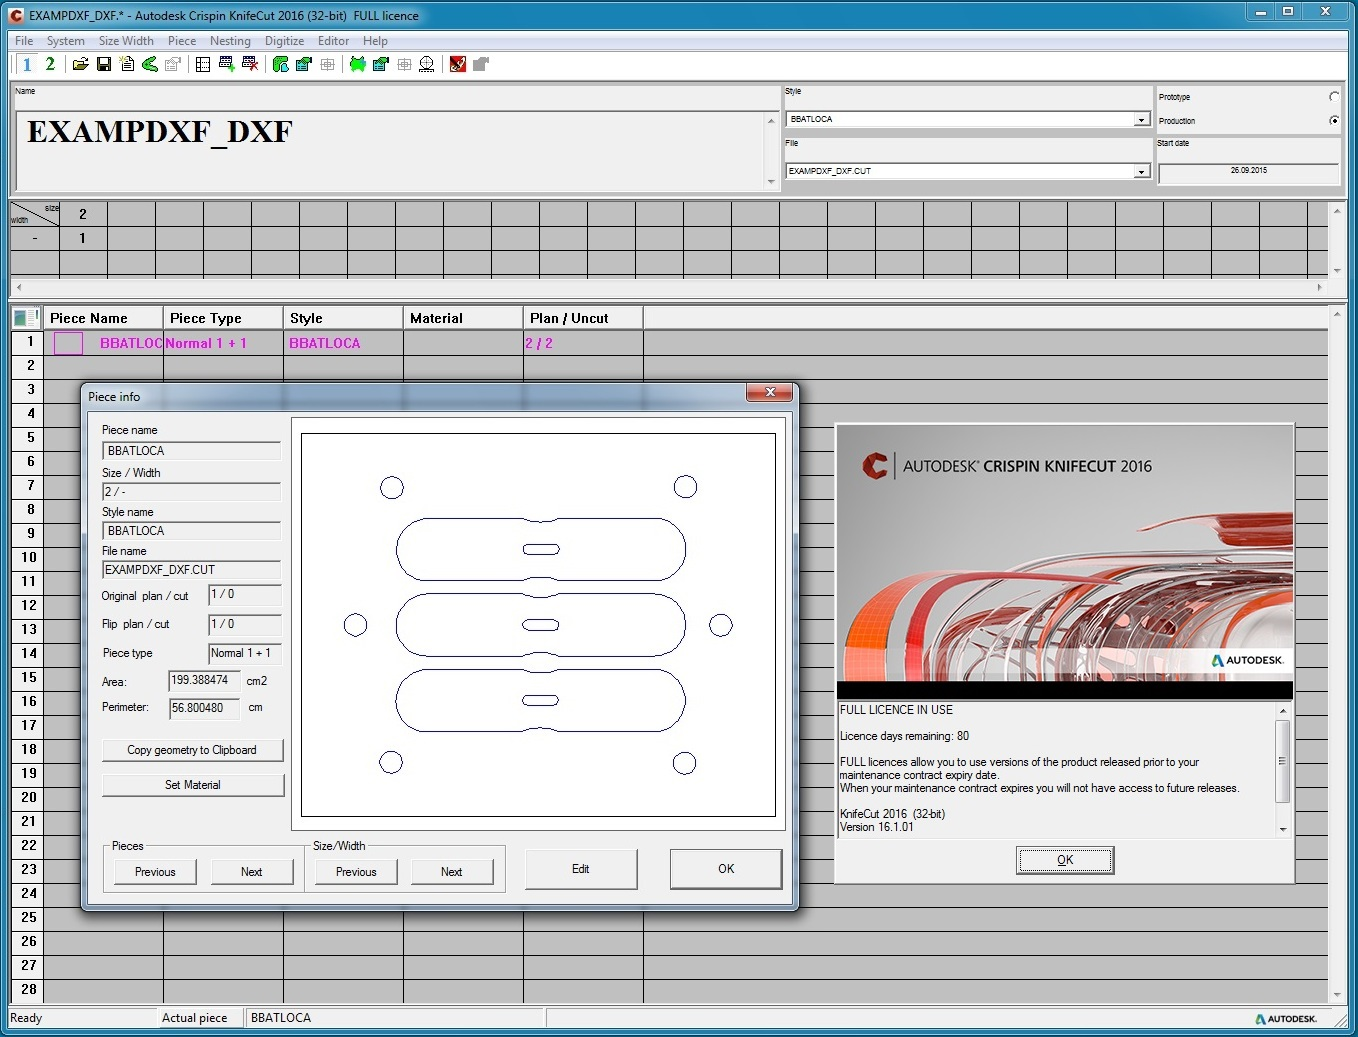 Working with Autodesk (ex Delcam) Crispin KnifeCut 2016 R1 full